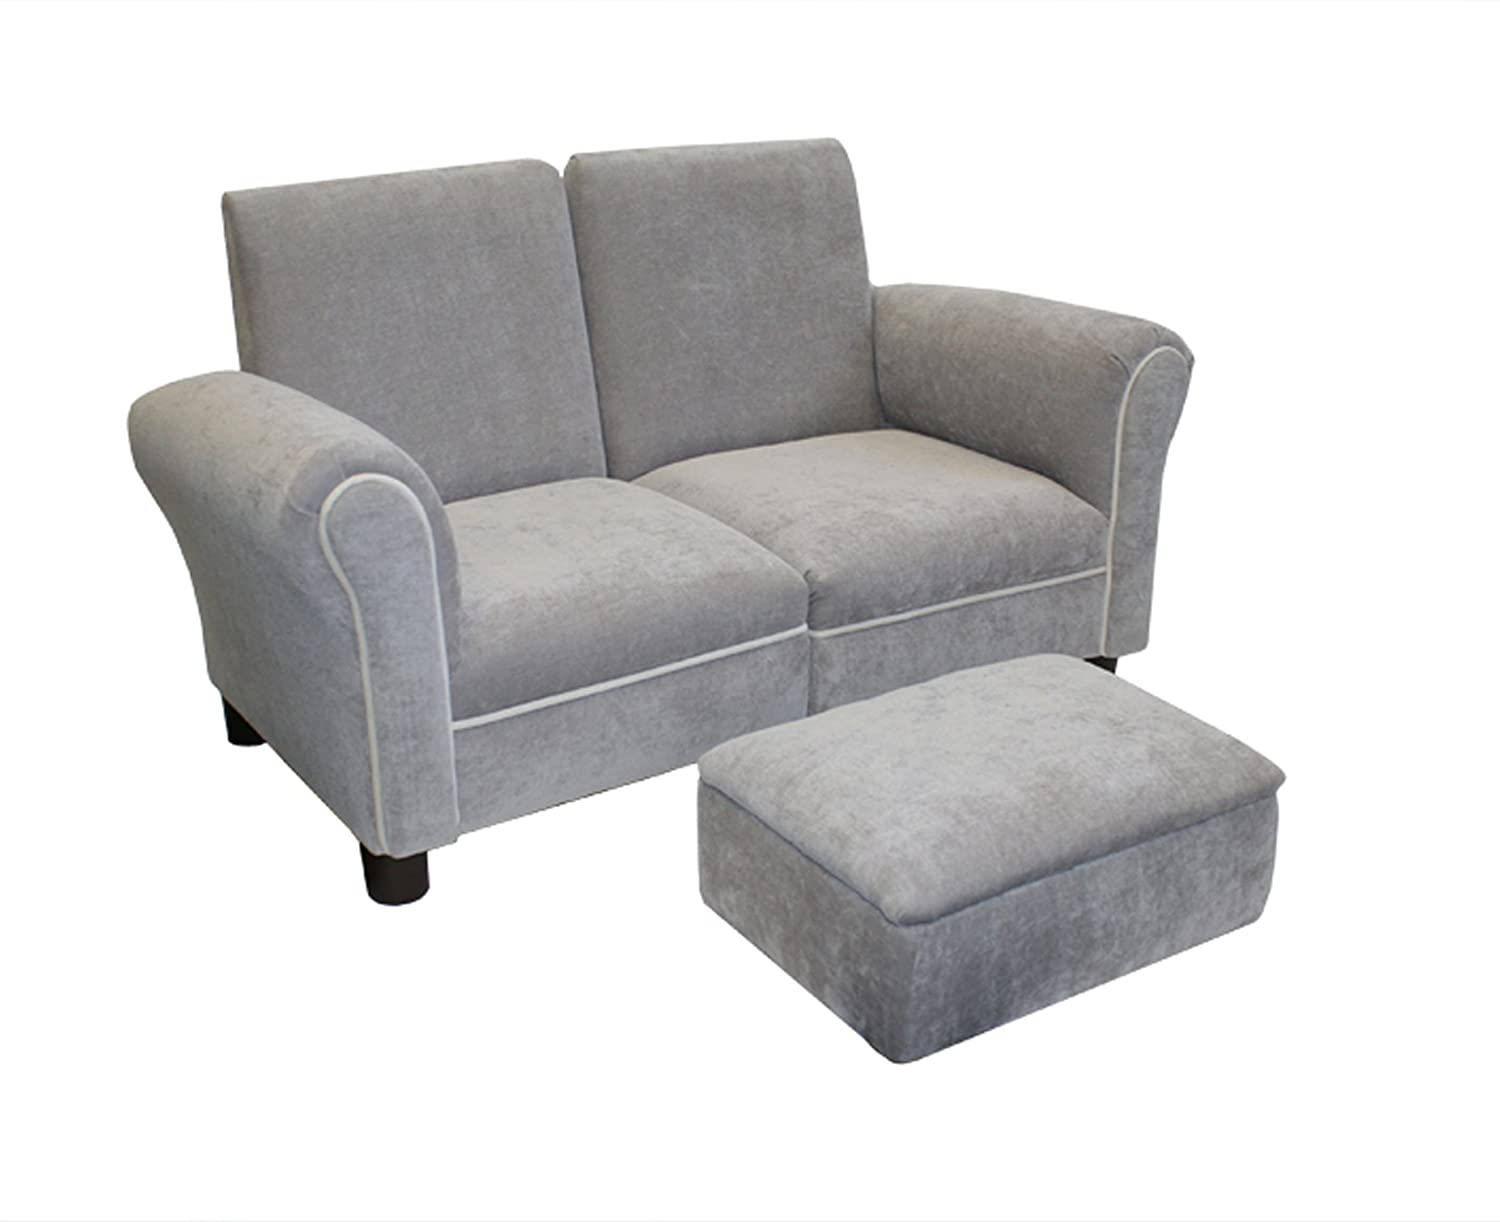 Amazon.com : Newco Kids Sofa Set, Grey : Childrens Upholstered Armchairs :  Baby